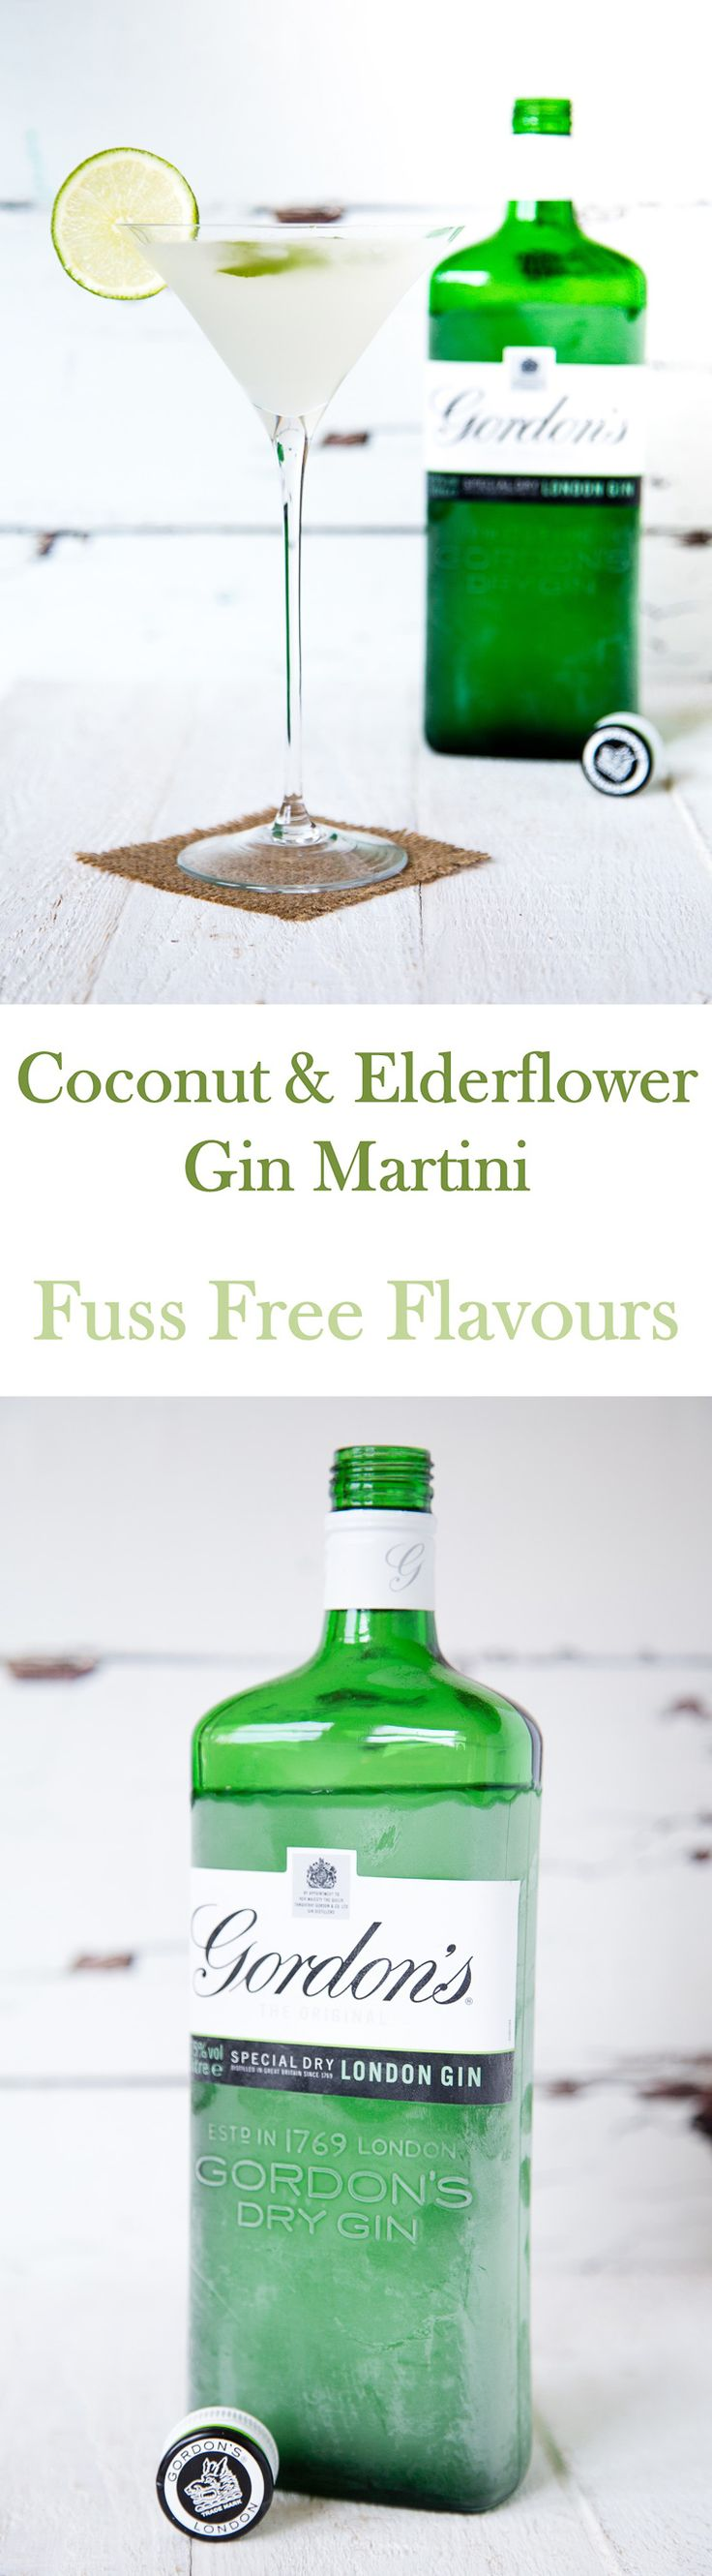 An elegant refreshing gin martini with classic English elderflower and a tropical coconut twist.  Perfect for all seasons!